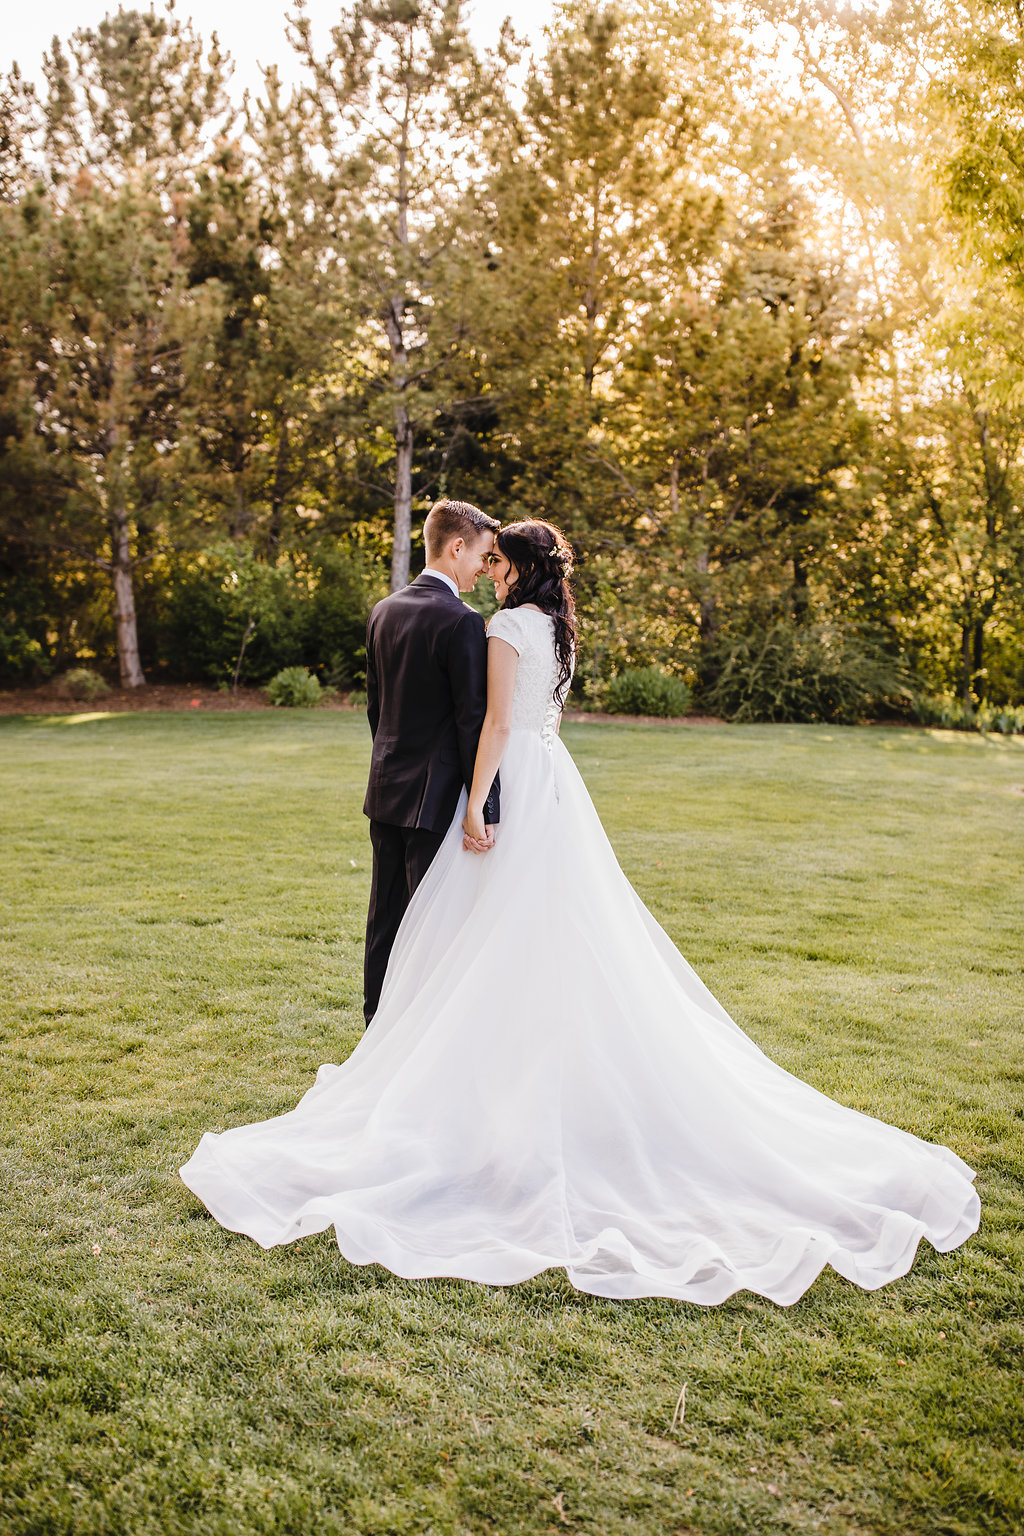 formal photographer session in salt lake city utah bridals bride and groom lds couple romantic